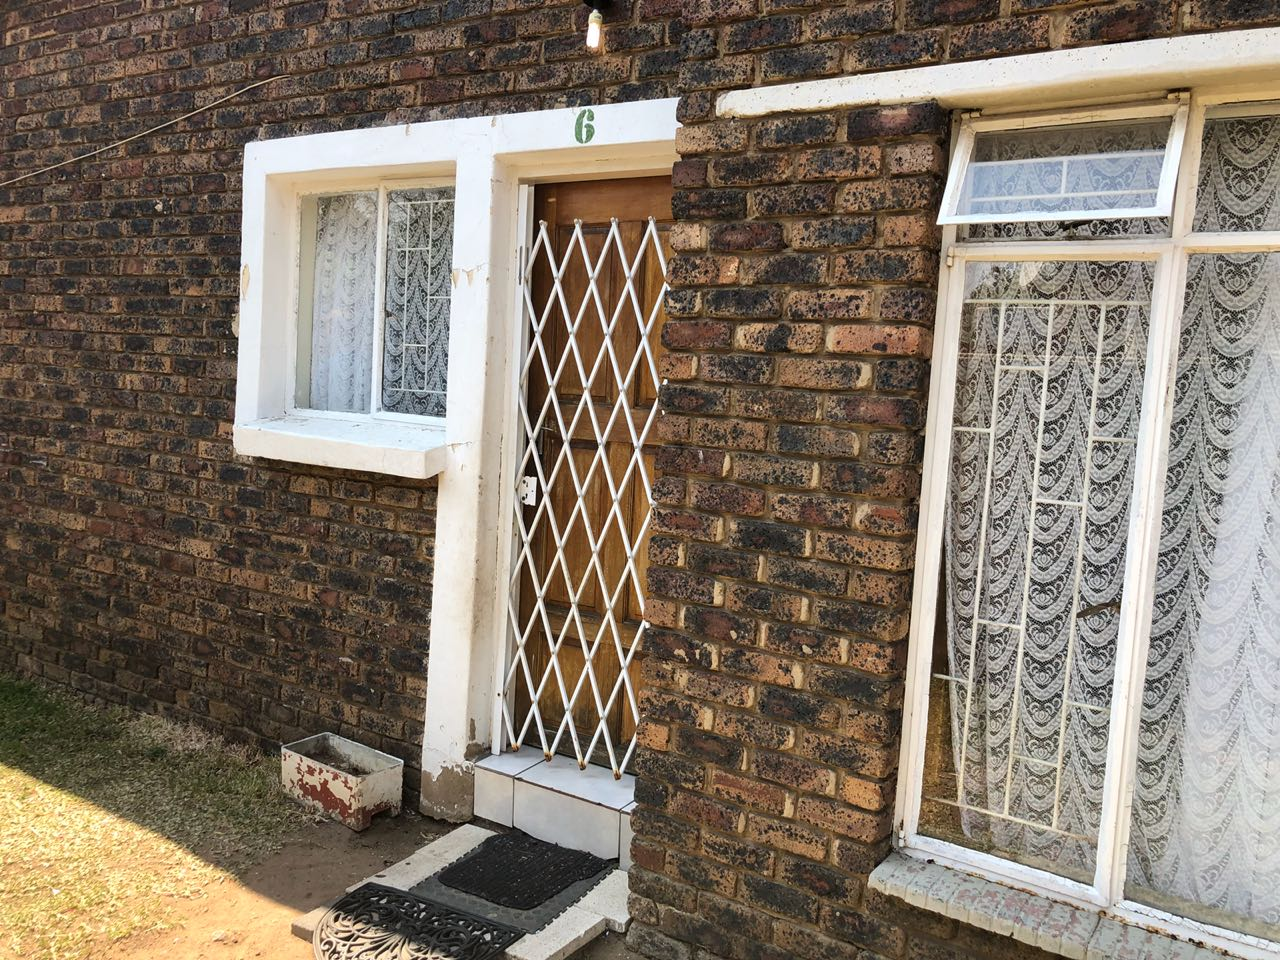 2 Bedroom Flat to let in Model Park, Witbank - With Prepaid Electricity